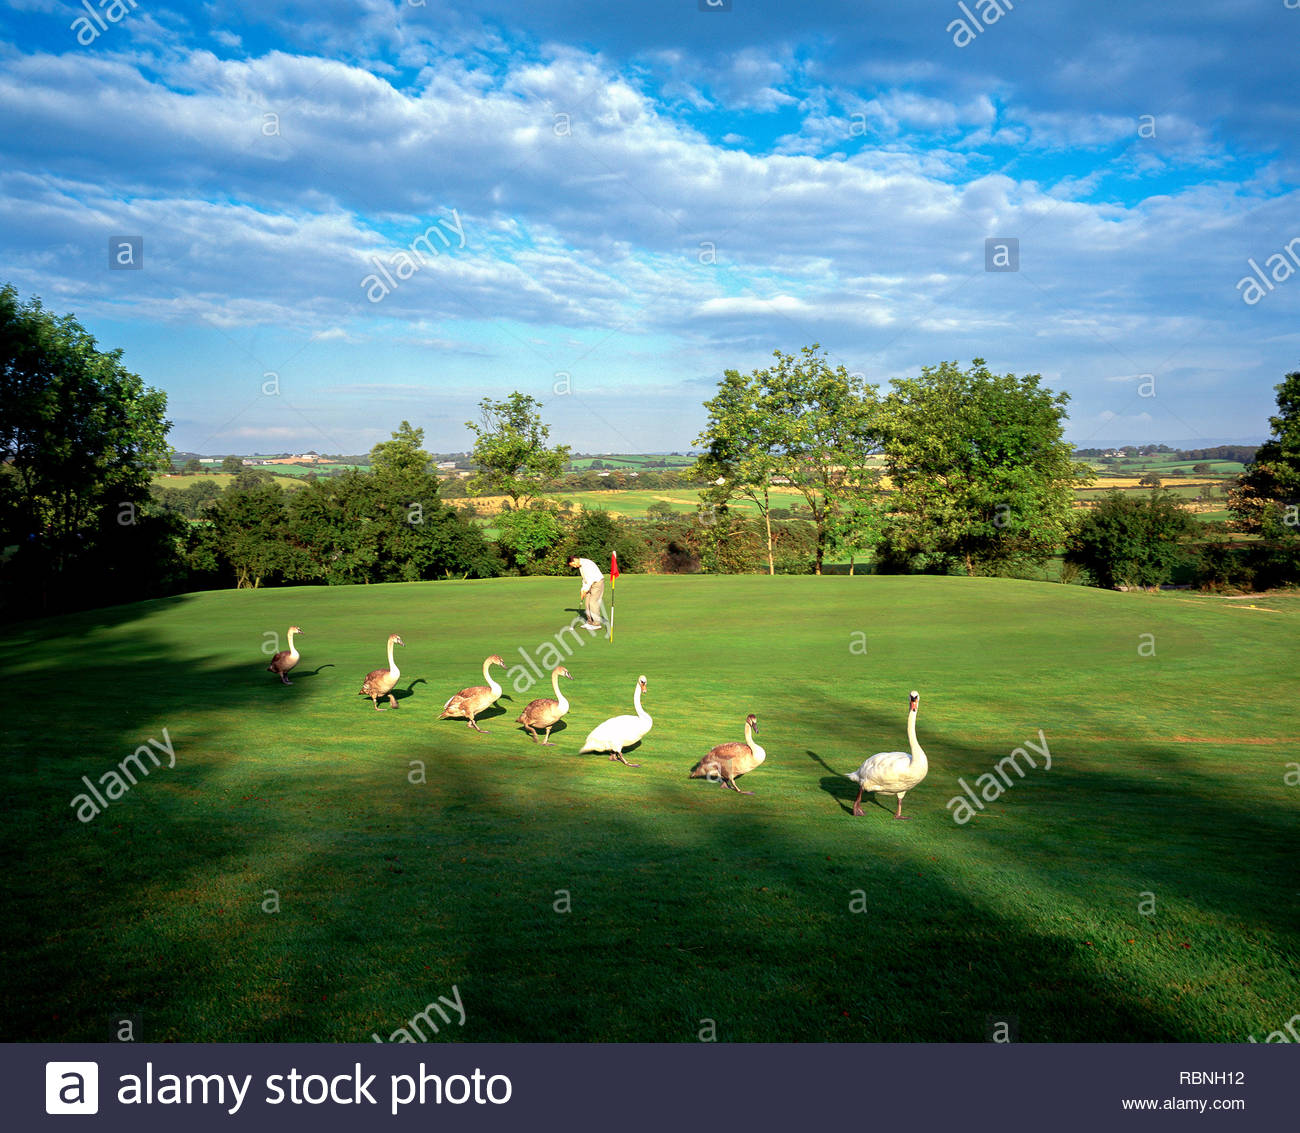 Swans crossing the putting green at Blackwood Golf Course, Co. Down - Stock Image